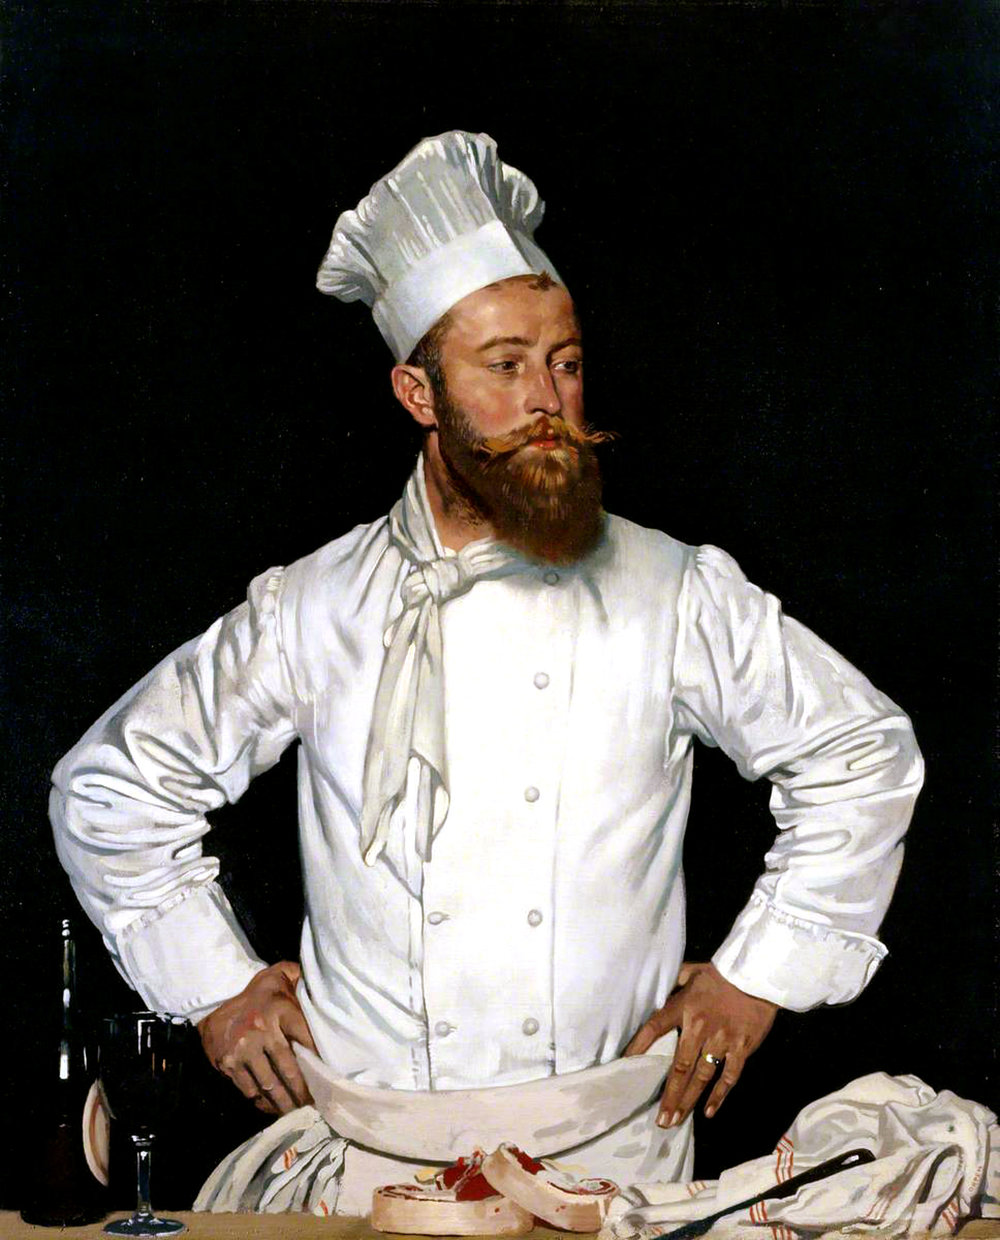 William_Orpen_Le_Chef_de_l'Hôtel_Chatham,_Paris.jpg